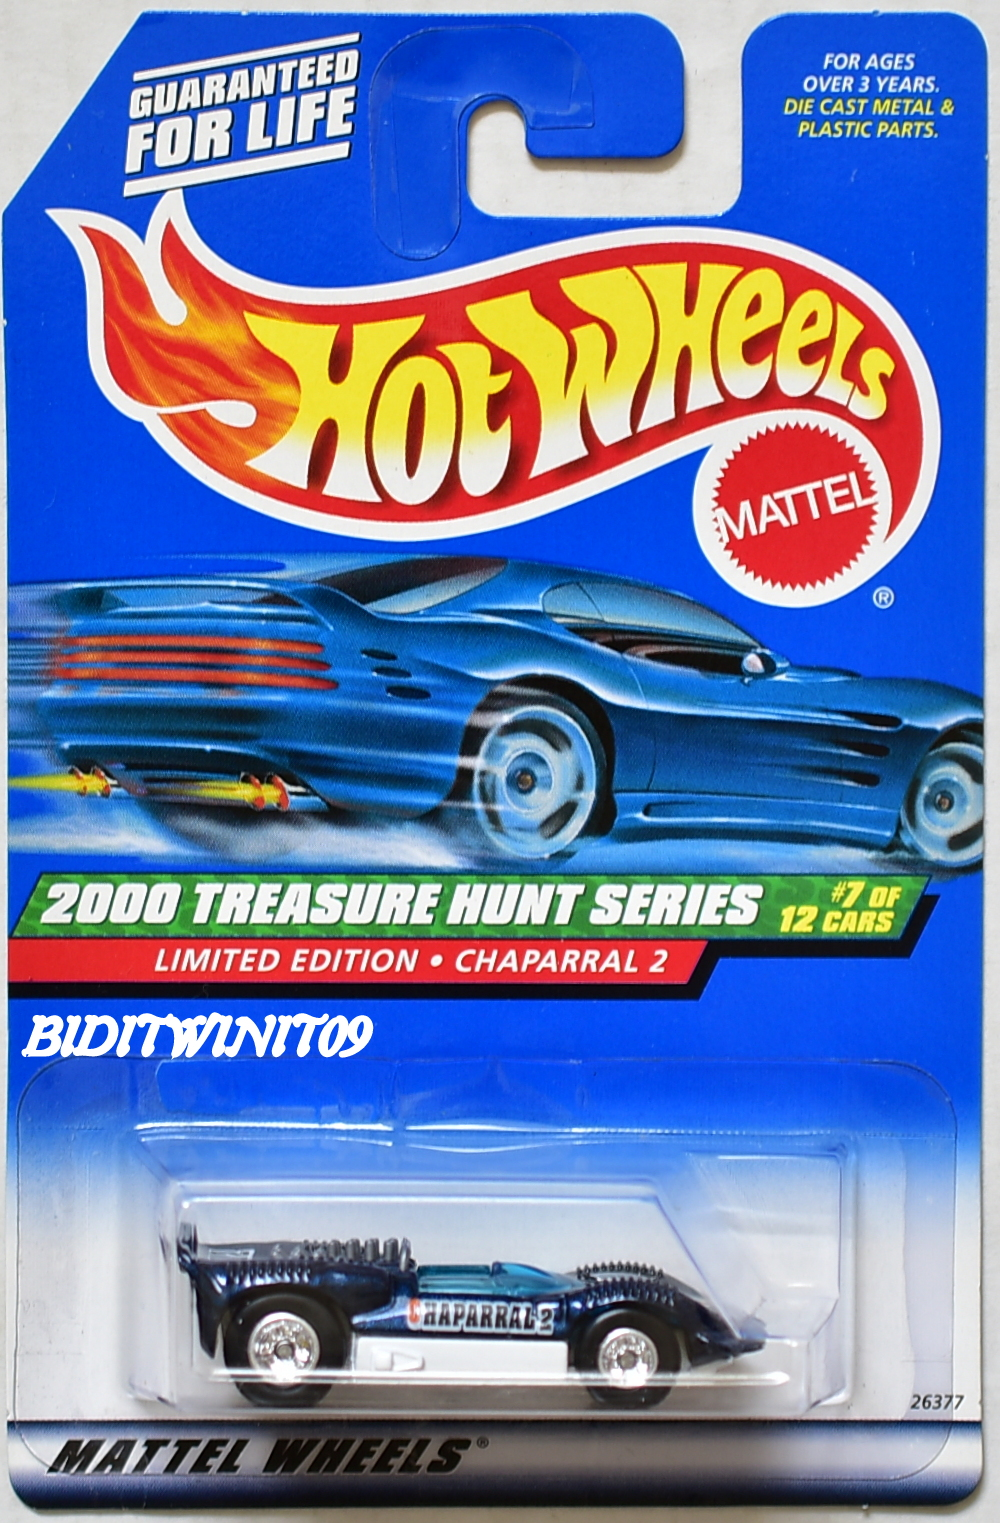 HOT WHEELS 2000 TREASURE HUNT LIMITED EDITION CHAPARRAL 2